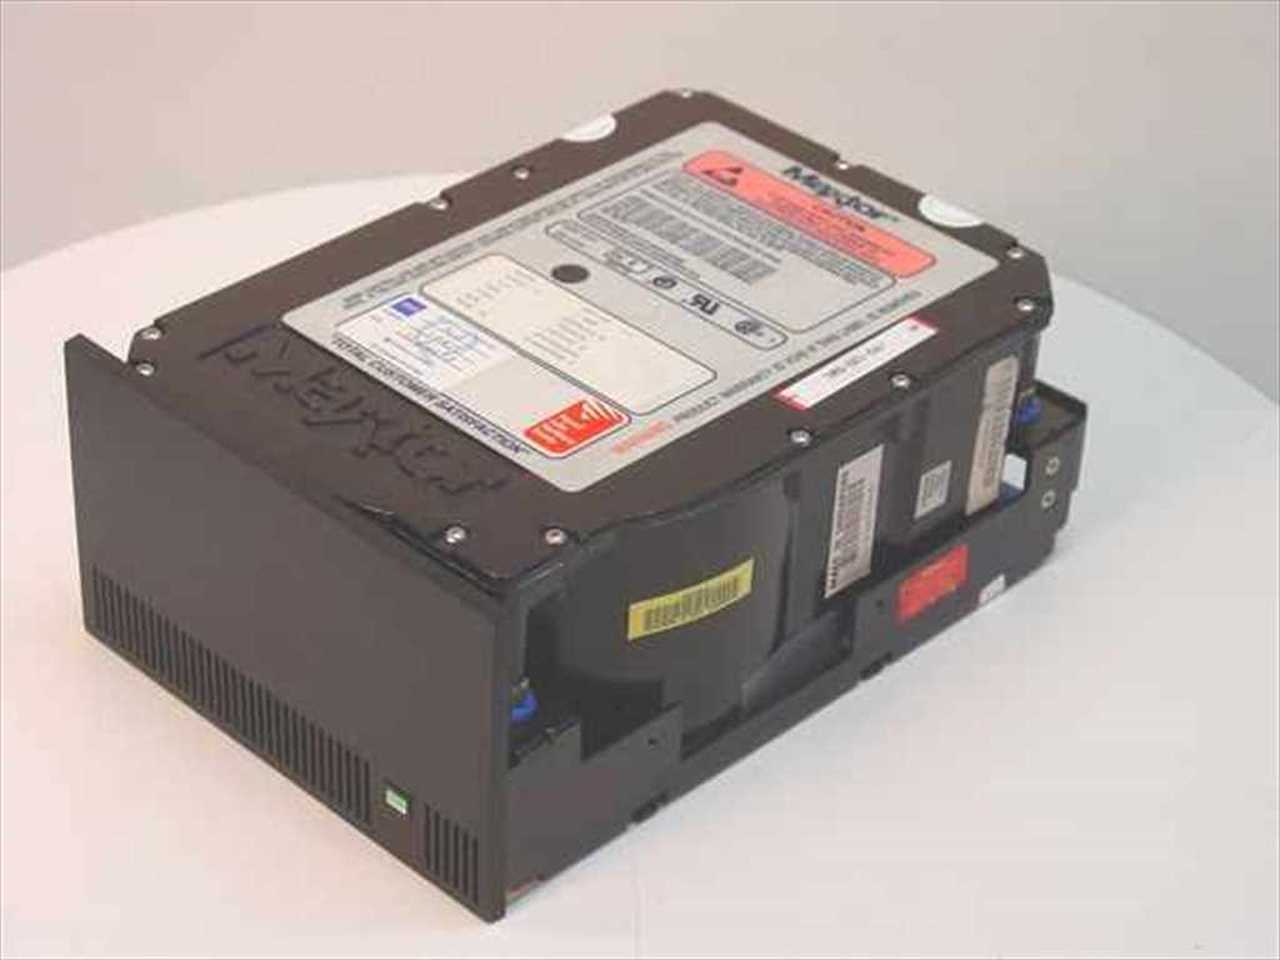 maxtor-1.2gb-5.25-full-height-scsi-hard-drive-po-12s-1.11__09090.1489914002.jpg